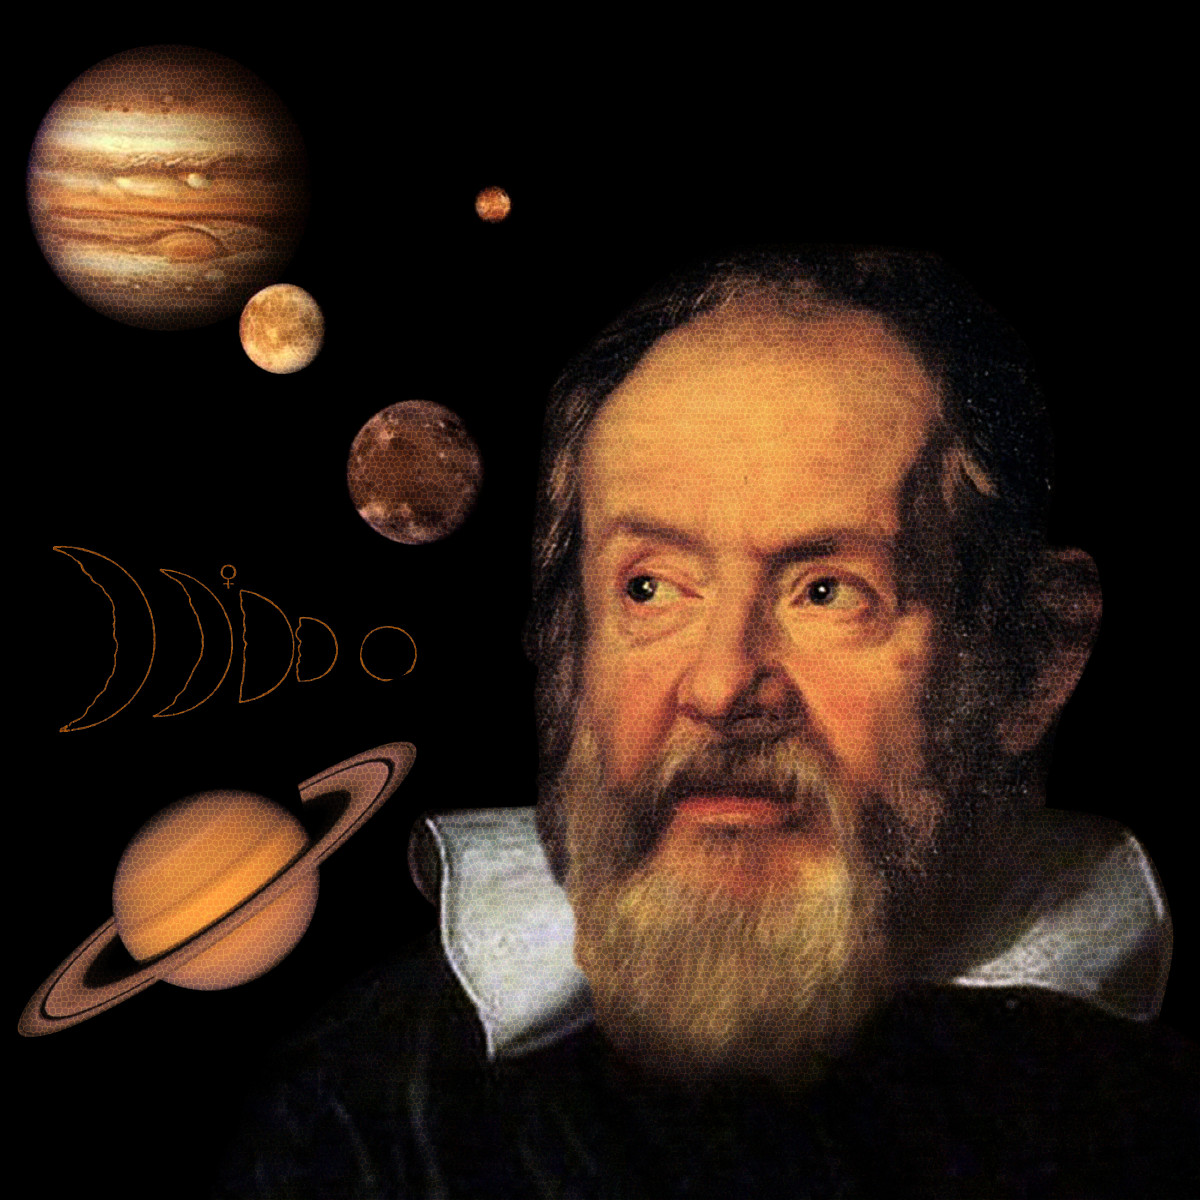 Galileo Galilei Discovers the Moons of Jupiter and the Phase of Venus